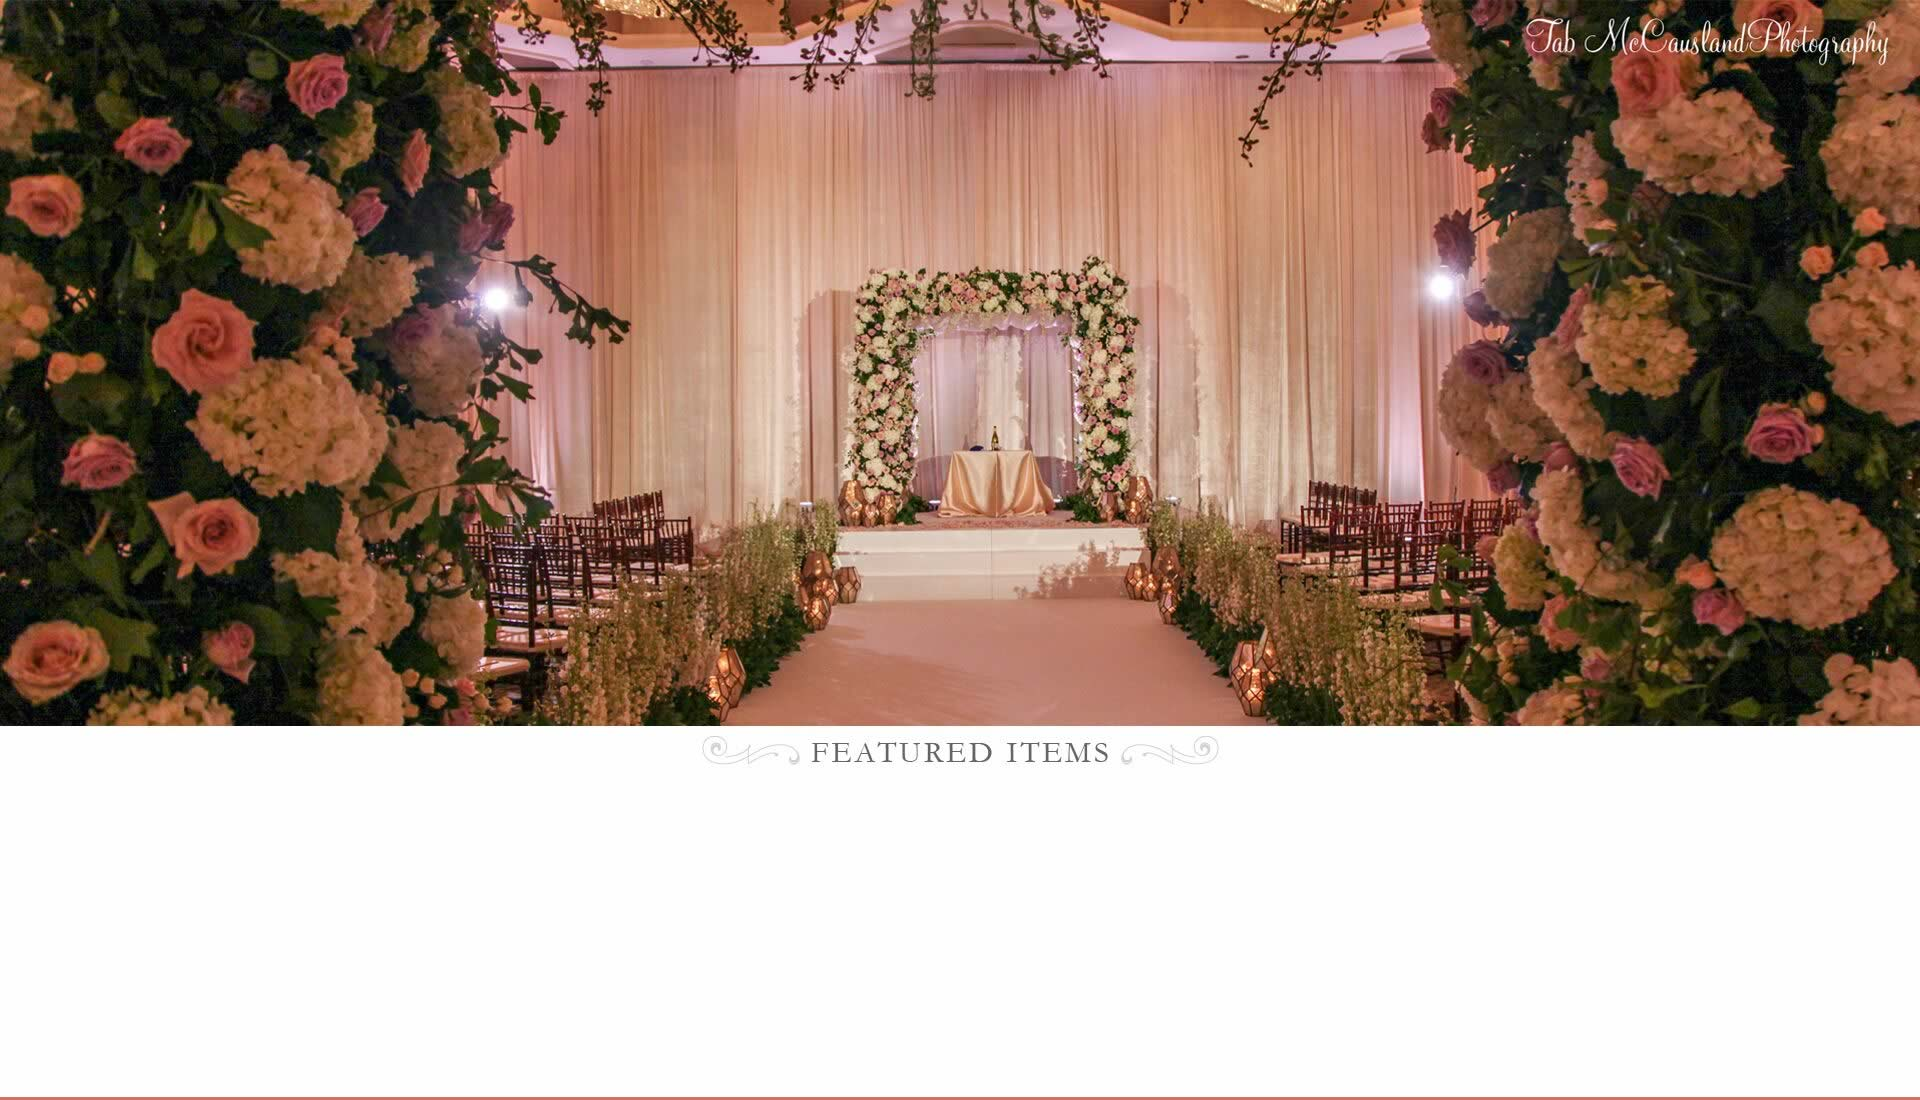 Wedding Ceremony Rentals - A Chair Affair Rentals